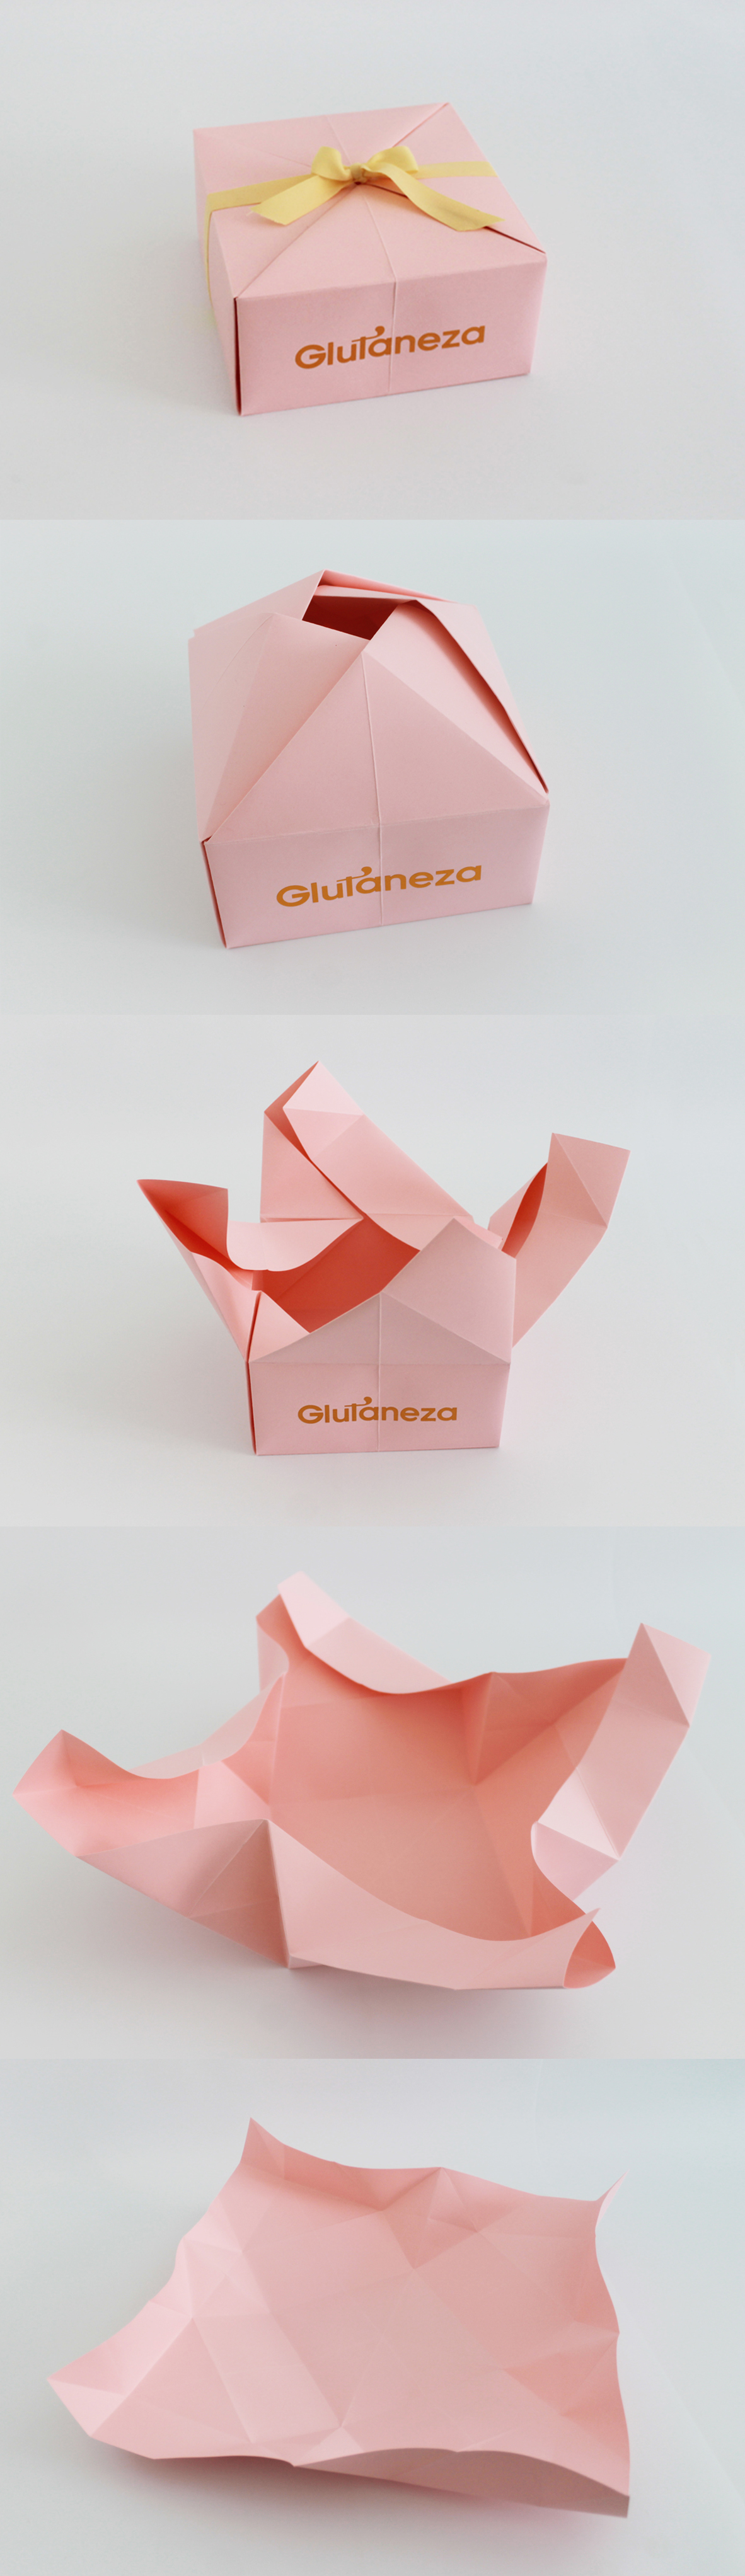 Branding Cupcakes Packaging For Glutaneza Freelancer Baker Tomoko Fuse Diagrams Design By Ana Isabel Morais Diagram